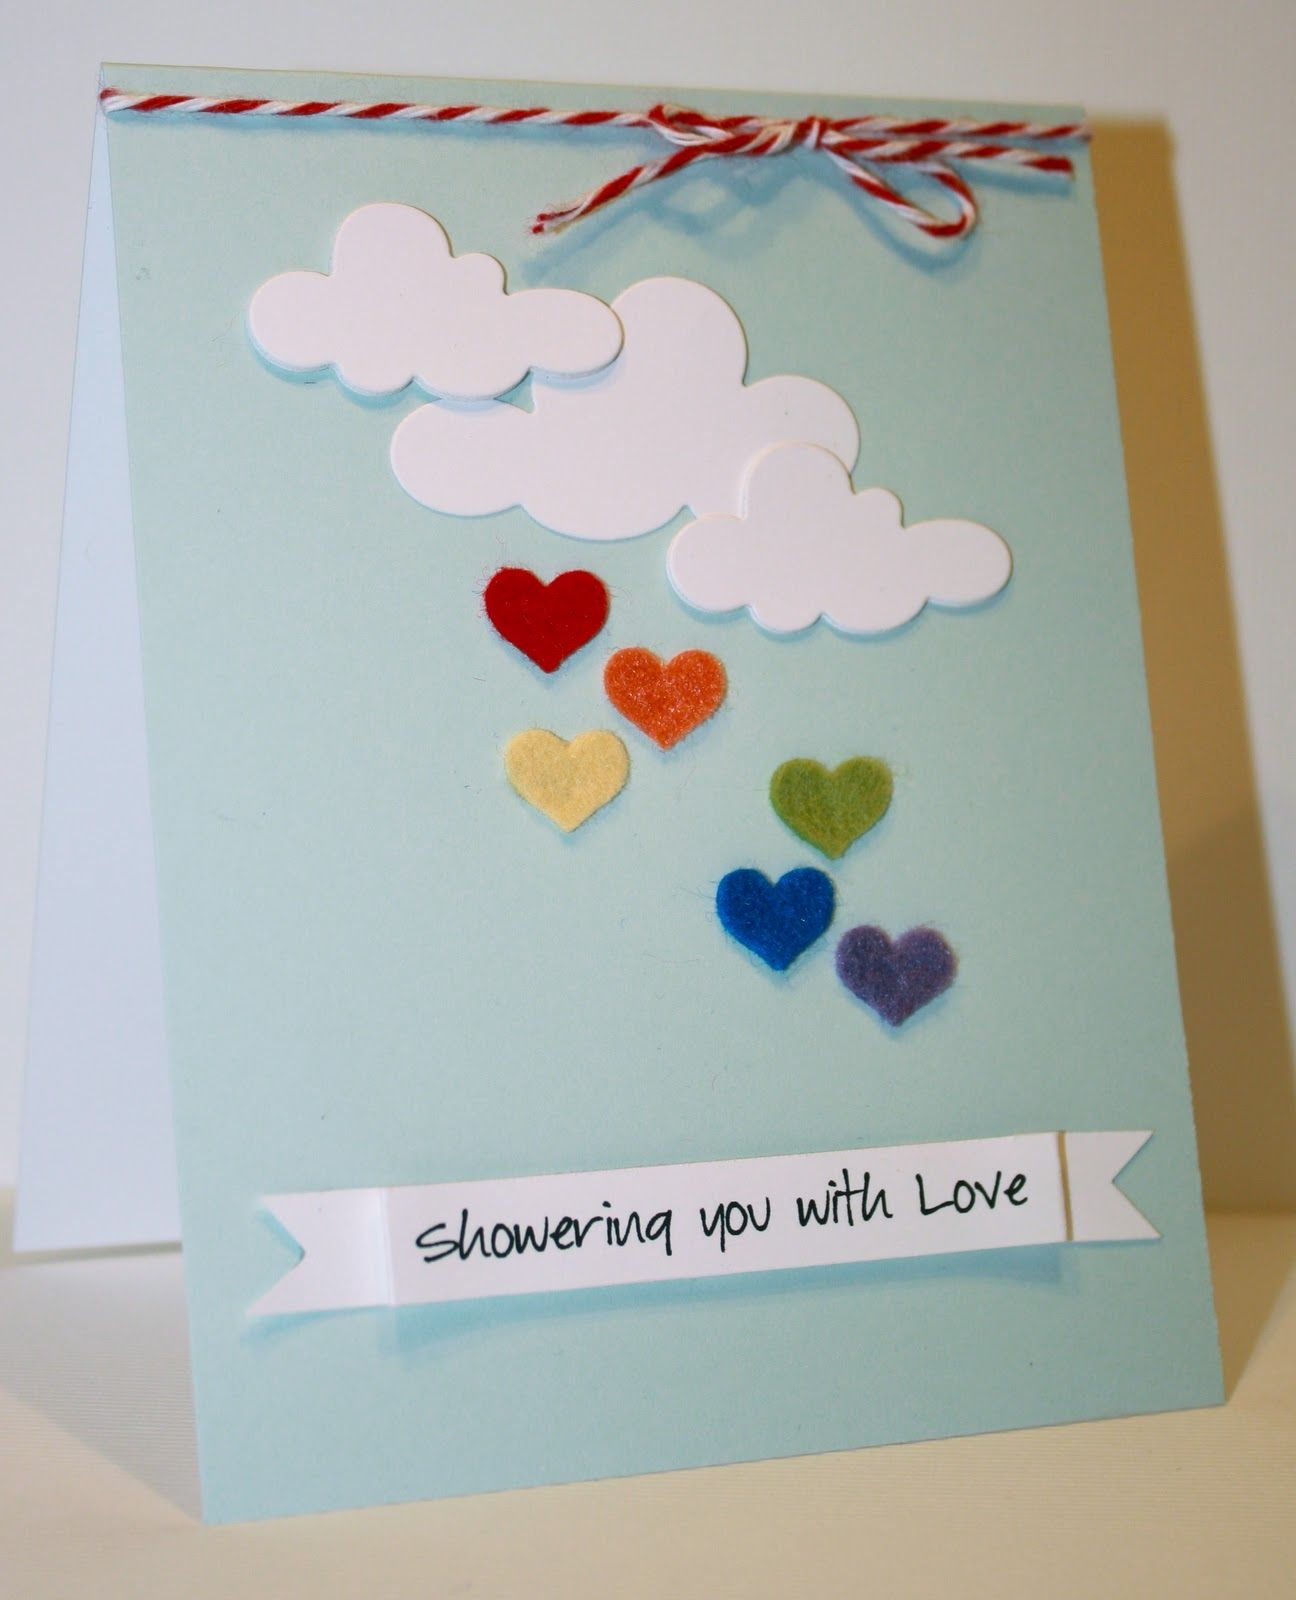 Paper Is My Passion Clean And Simple Card Making Day 3 Homemade Birthday Cards Rainbow Card Simple Cards